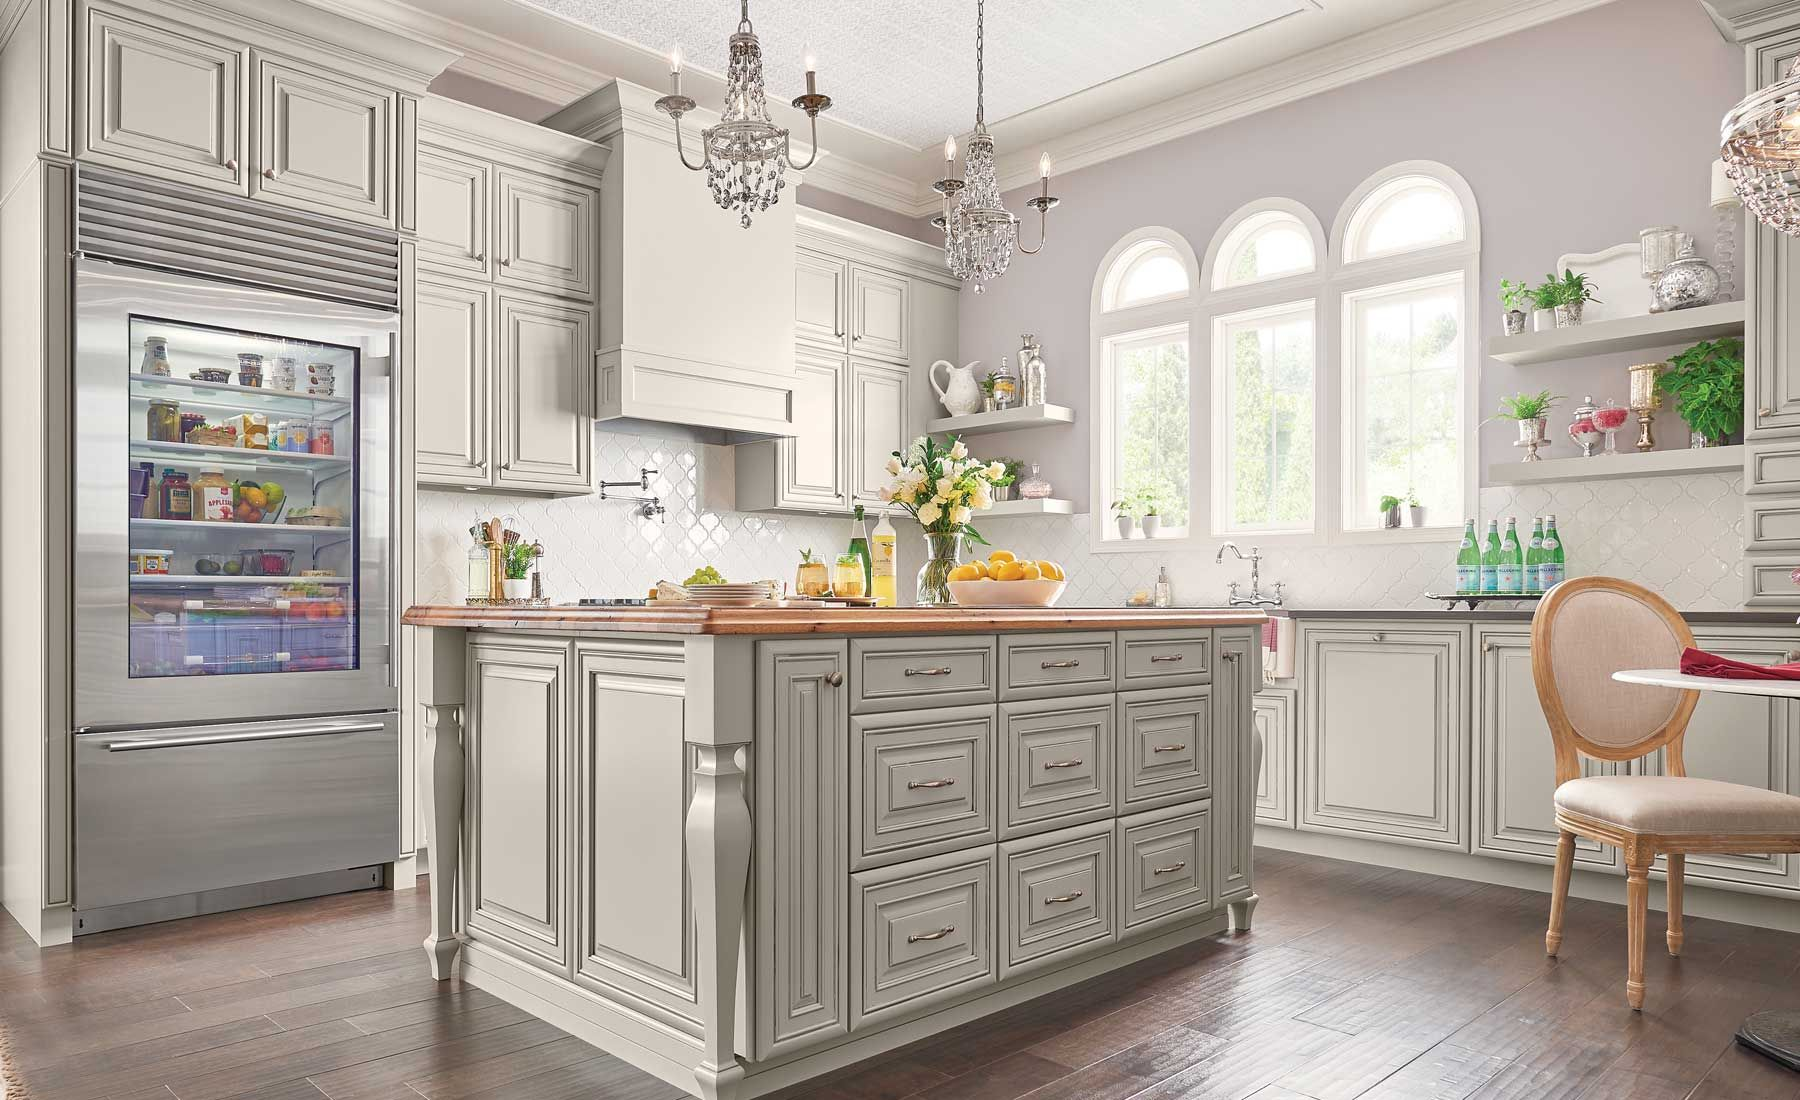 our kitchen cabinet showroom located in queens ny welcomes